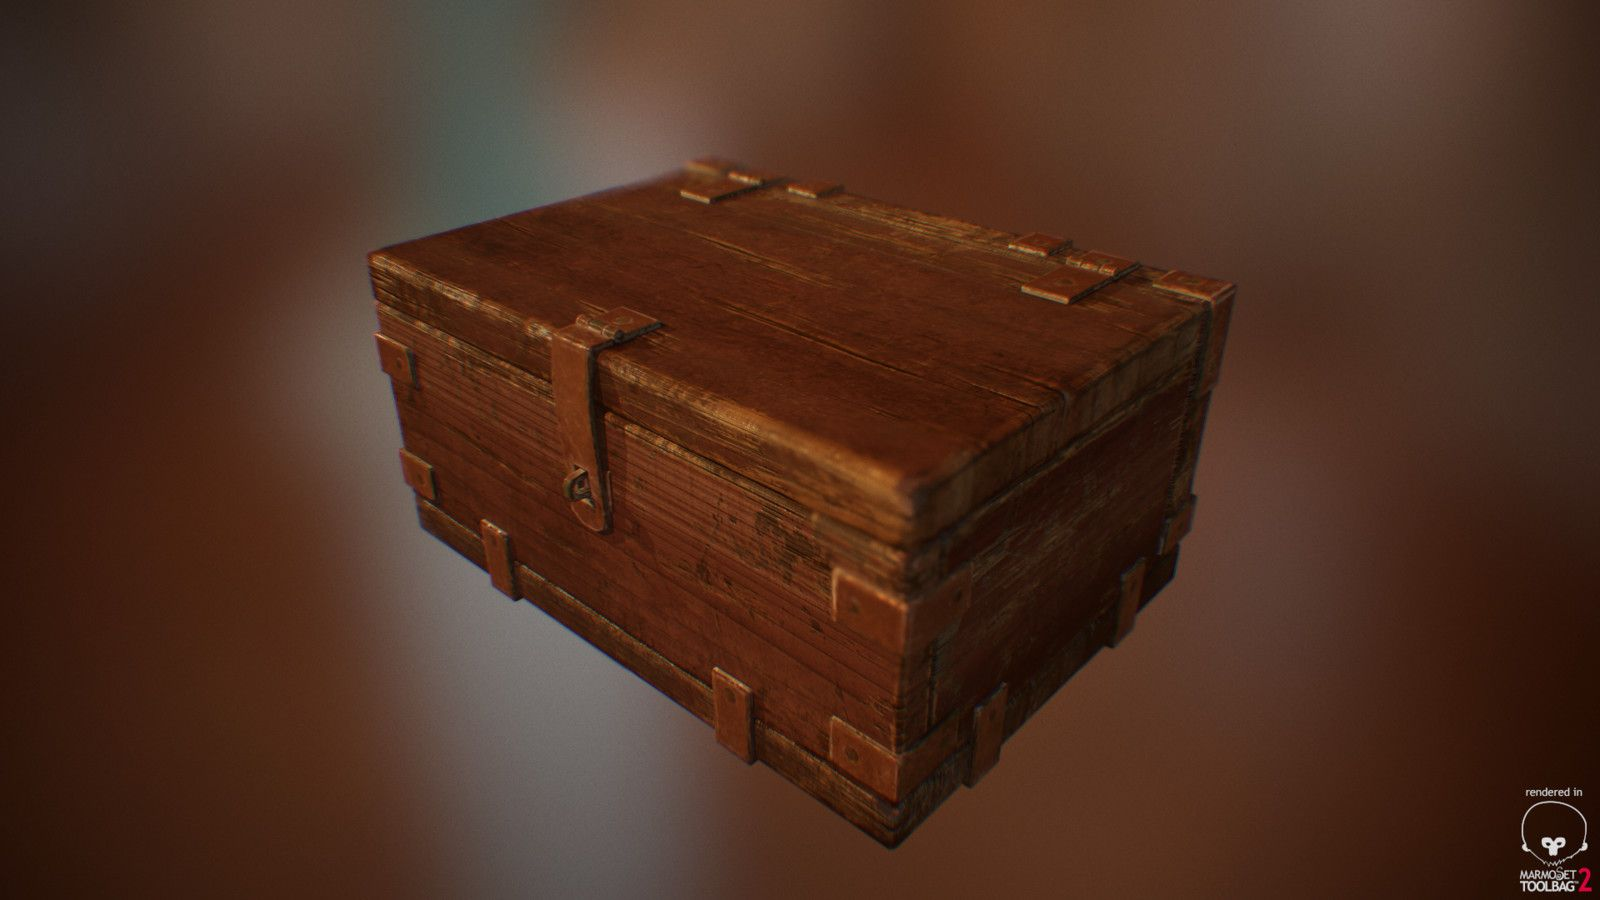 Old Wooden Box, Malik Fernandez on ArtStation at https://www.artstation.com/artwork/VLwwb